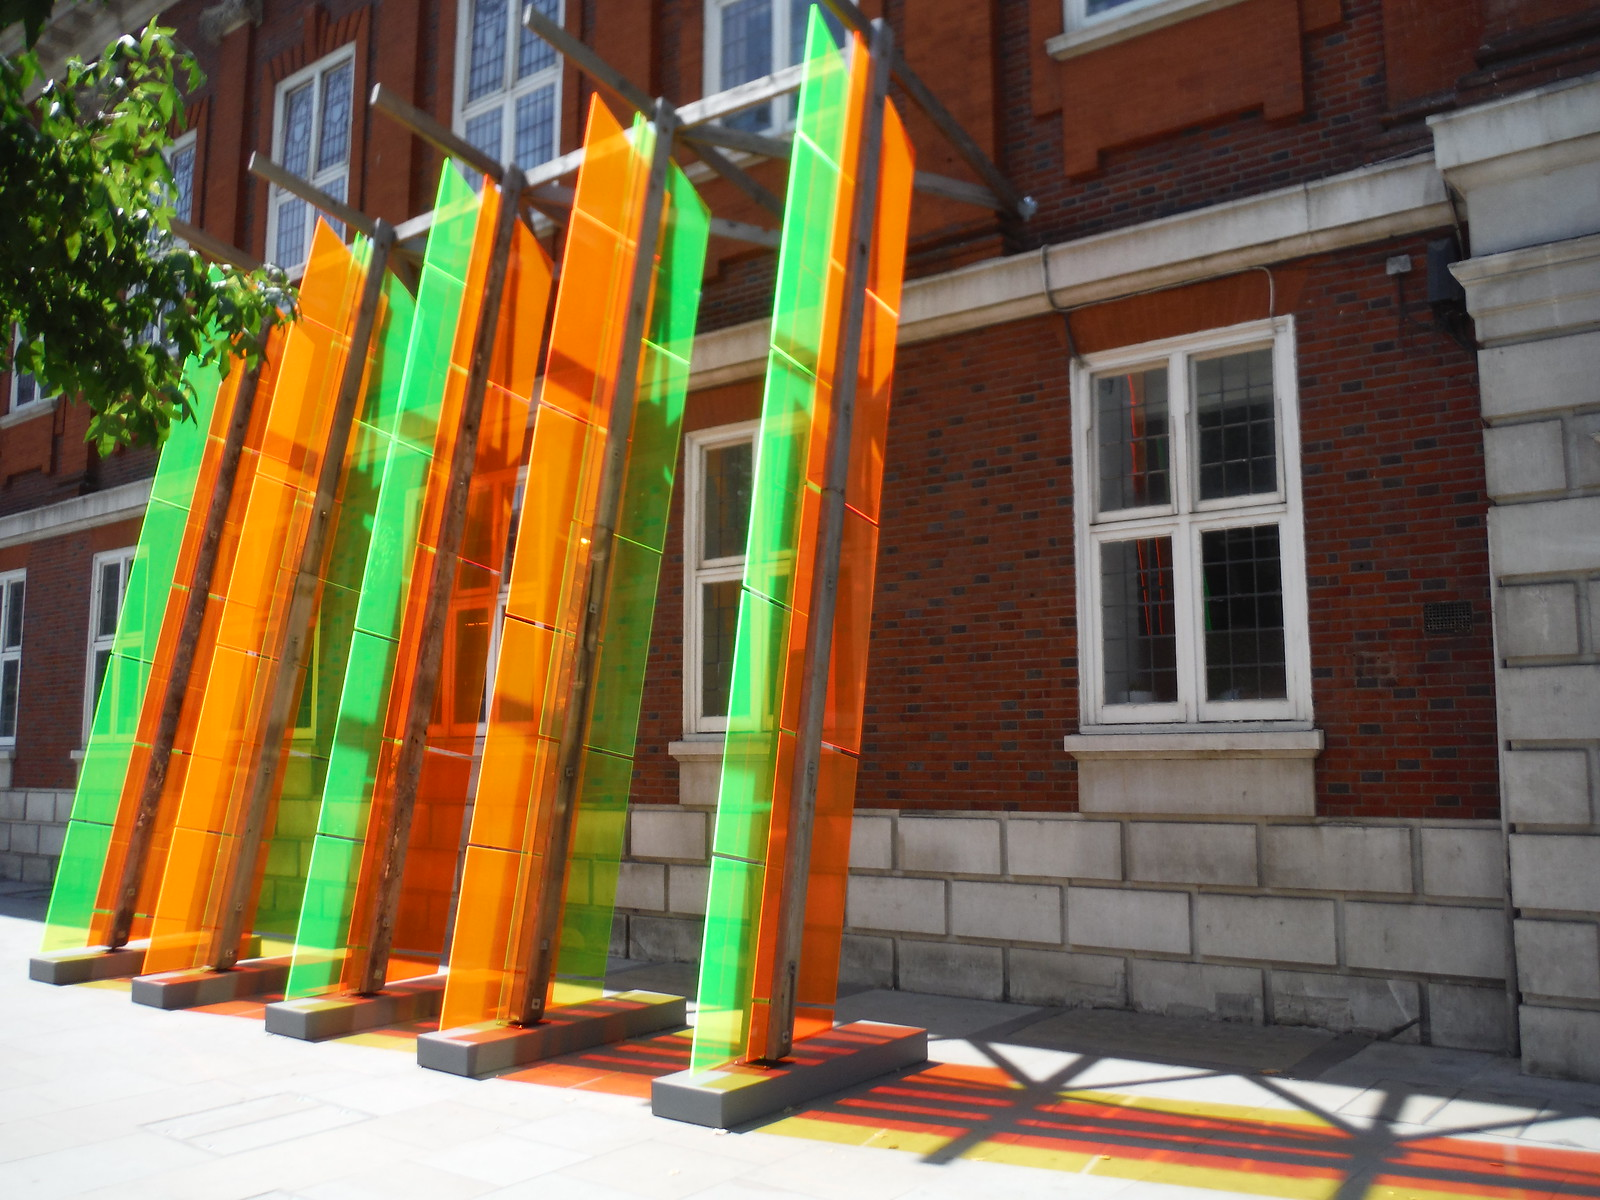 Jyll Bradley - Dutch/Light (for Agneta Block) SWC Walk Short 24 - Sculpture in the City